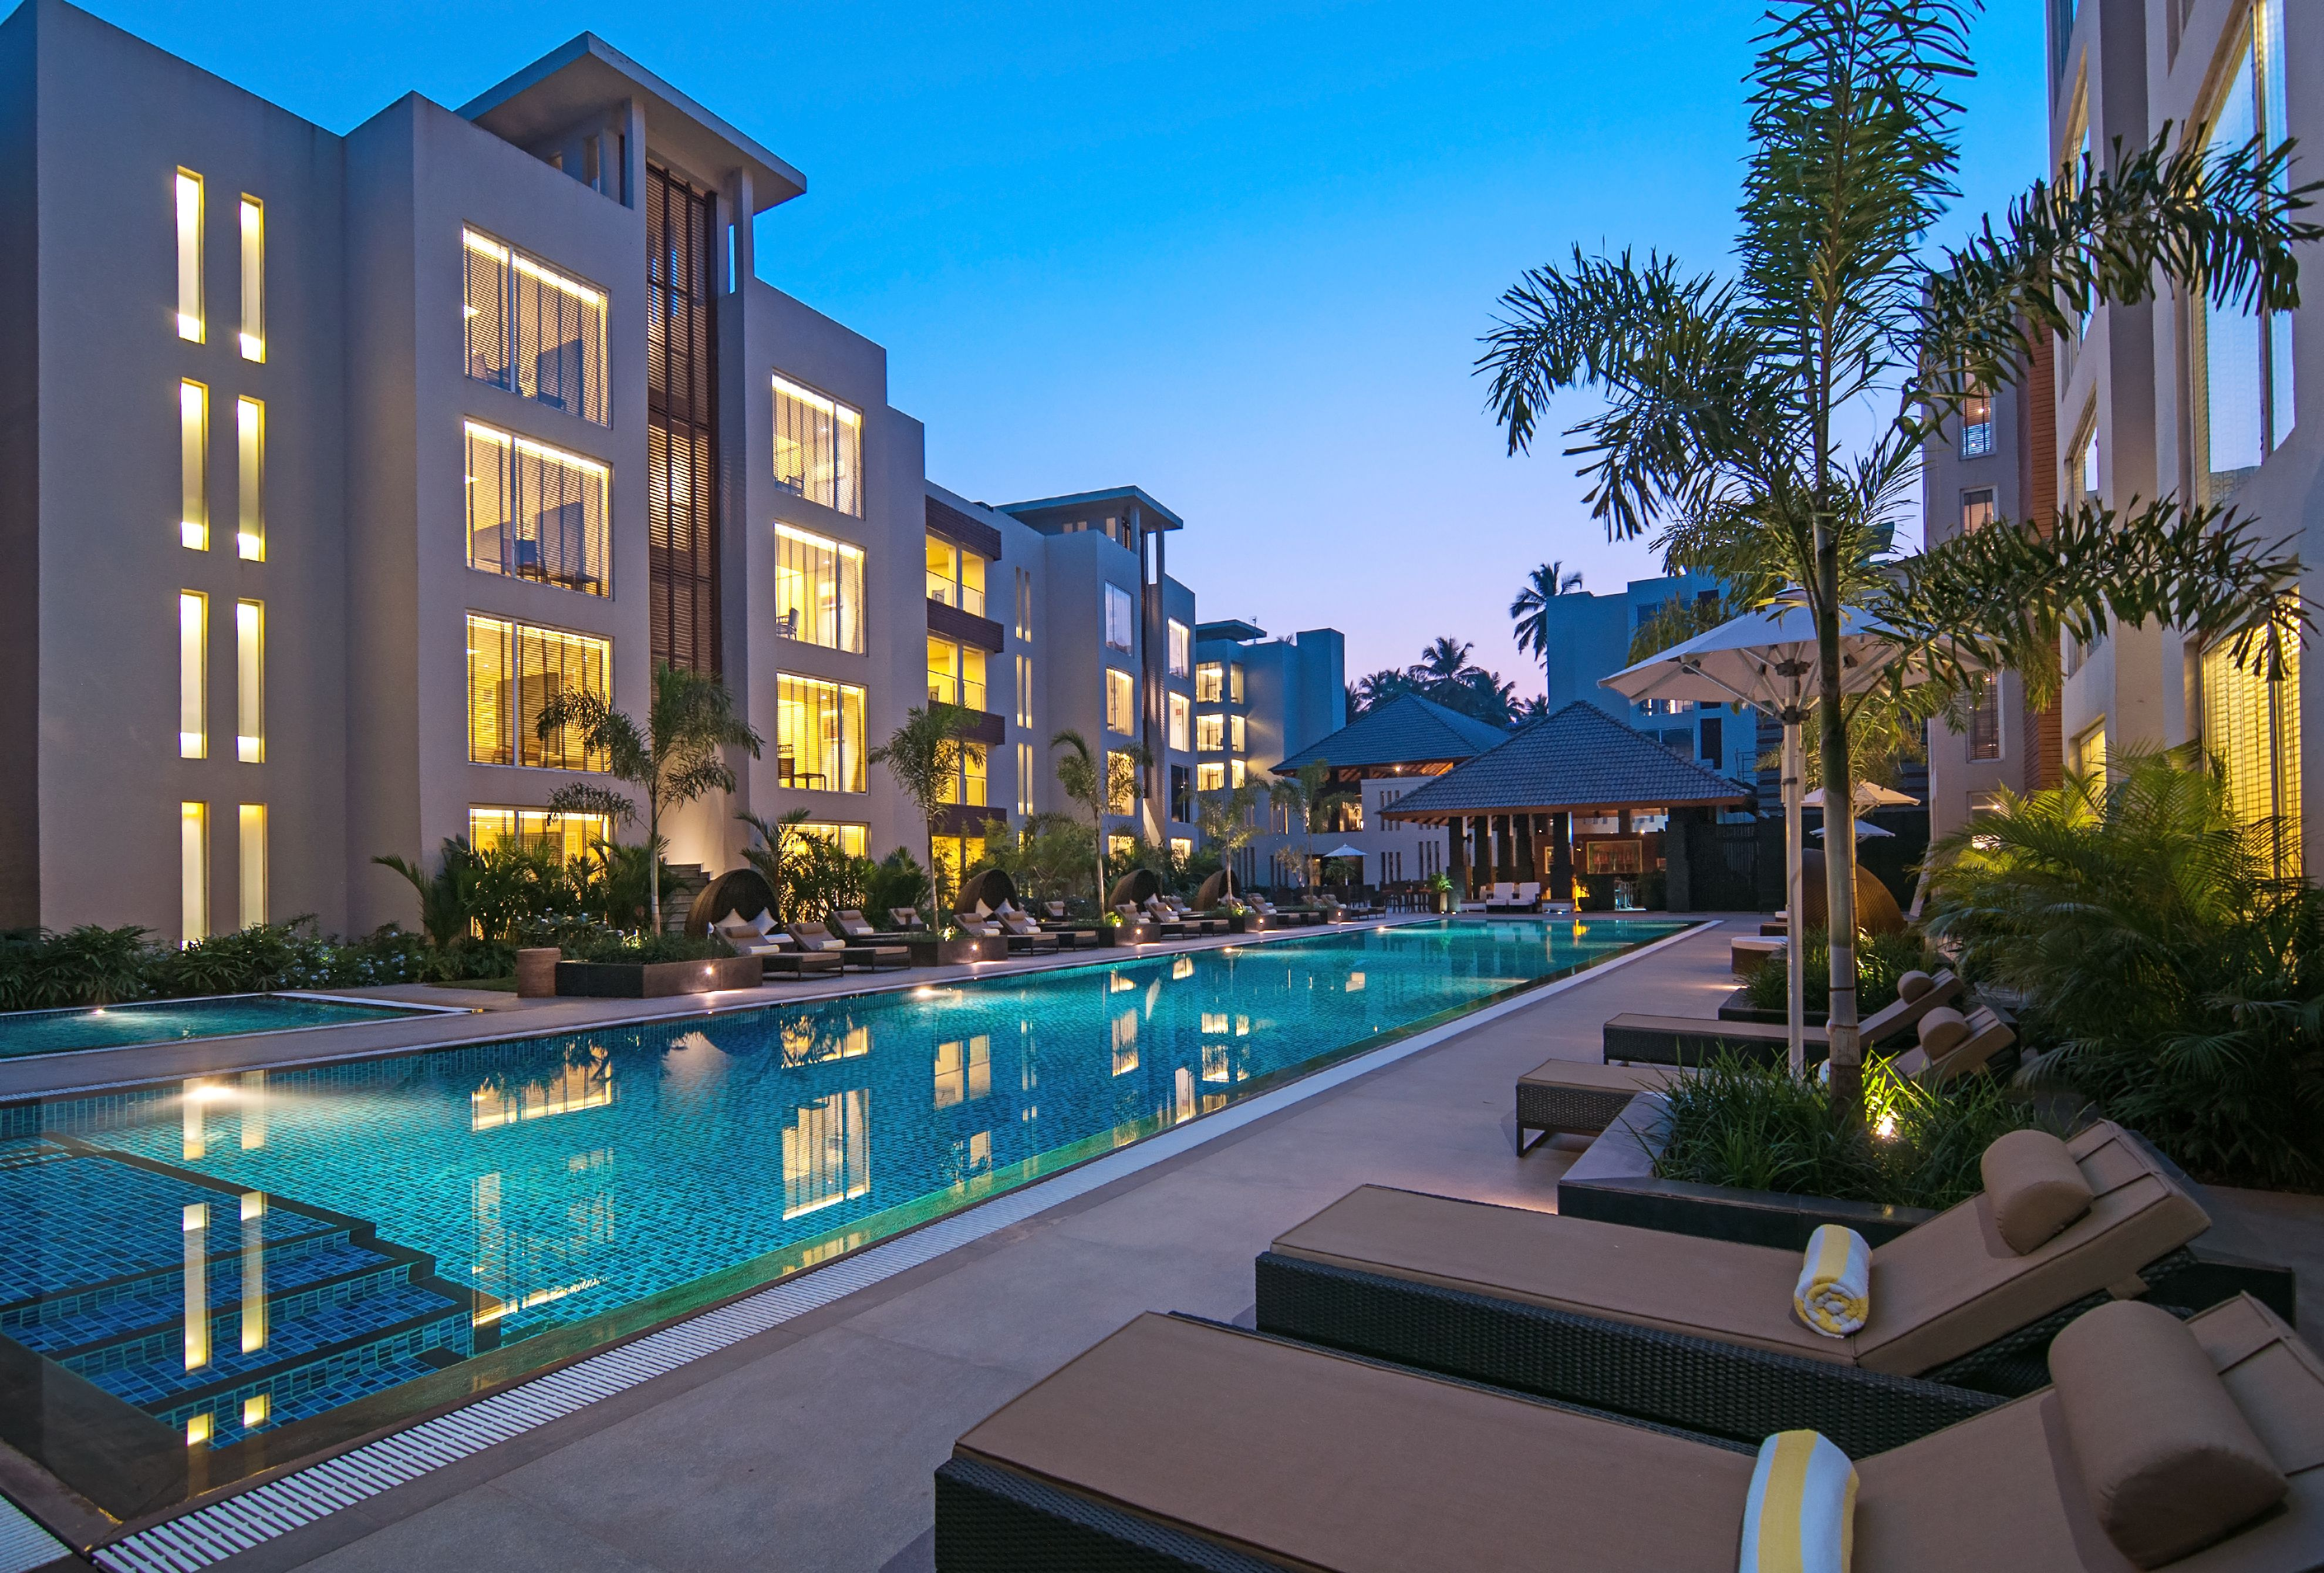 Swissôtel Goa is located in the town of Calangute which is